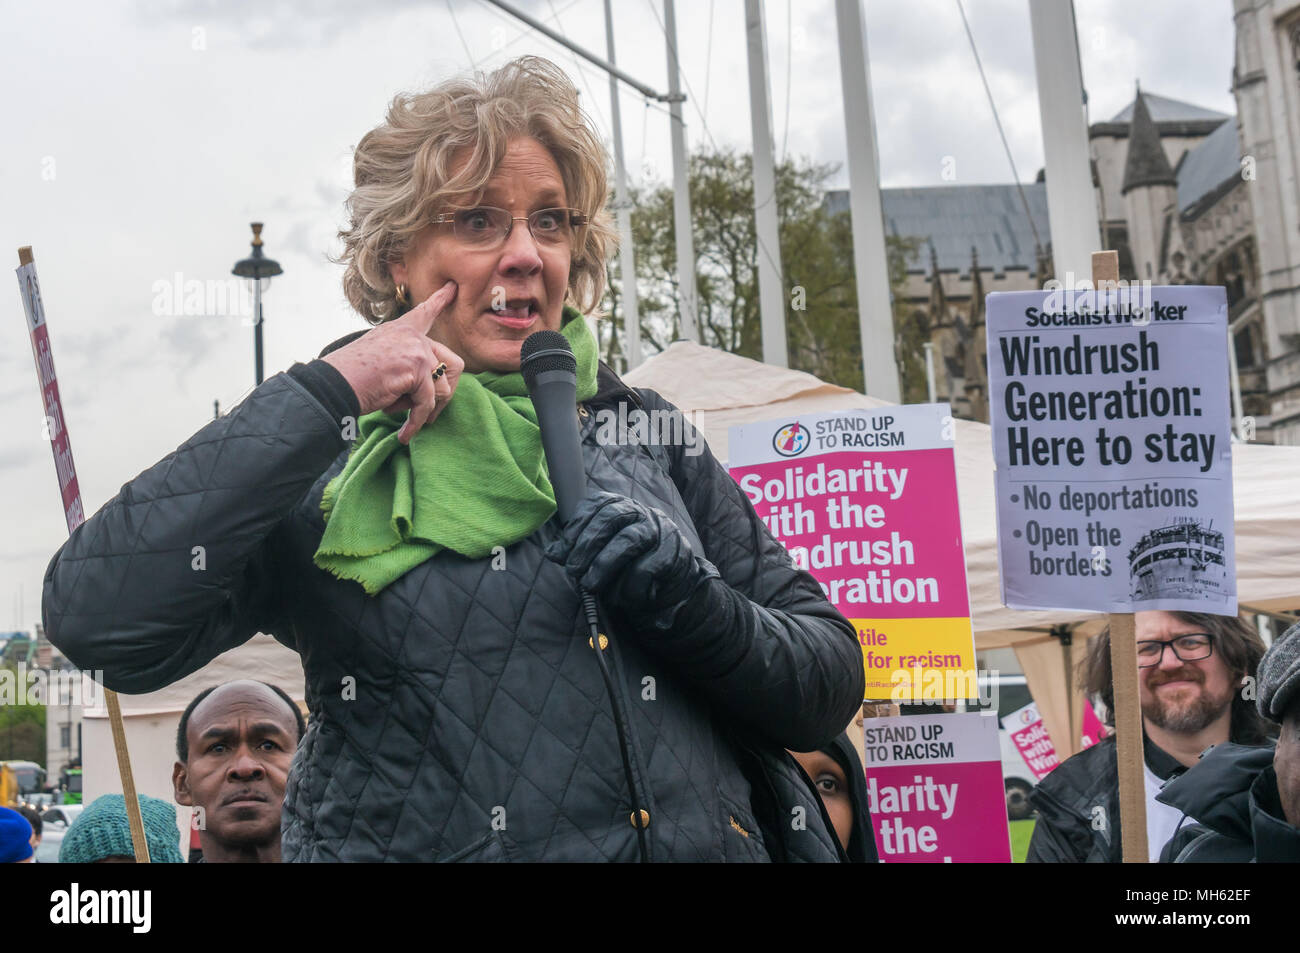 London, UK. 30th April 2018.  A woman who was born in Jamaica tells us she has never, ever, had her immigration status questioned and points a finger into the skin of her cheek to show us why - she is white and immigration controls are racist. The protest was in support of the petition calling for an end to the deportations of migrants in the 'Windrush generation' who arrived in Britain between 1948 and 1971. It calls on the government to change the burden of proof which means they are now required to prove their right to remain, and to provide compensation for any loss and hurt.. Most of thos - Stock Image